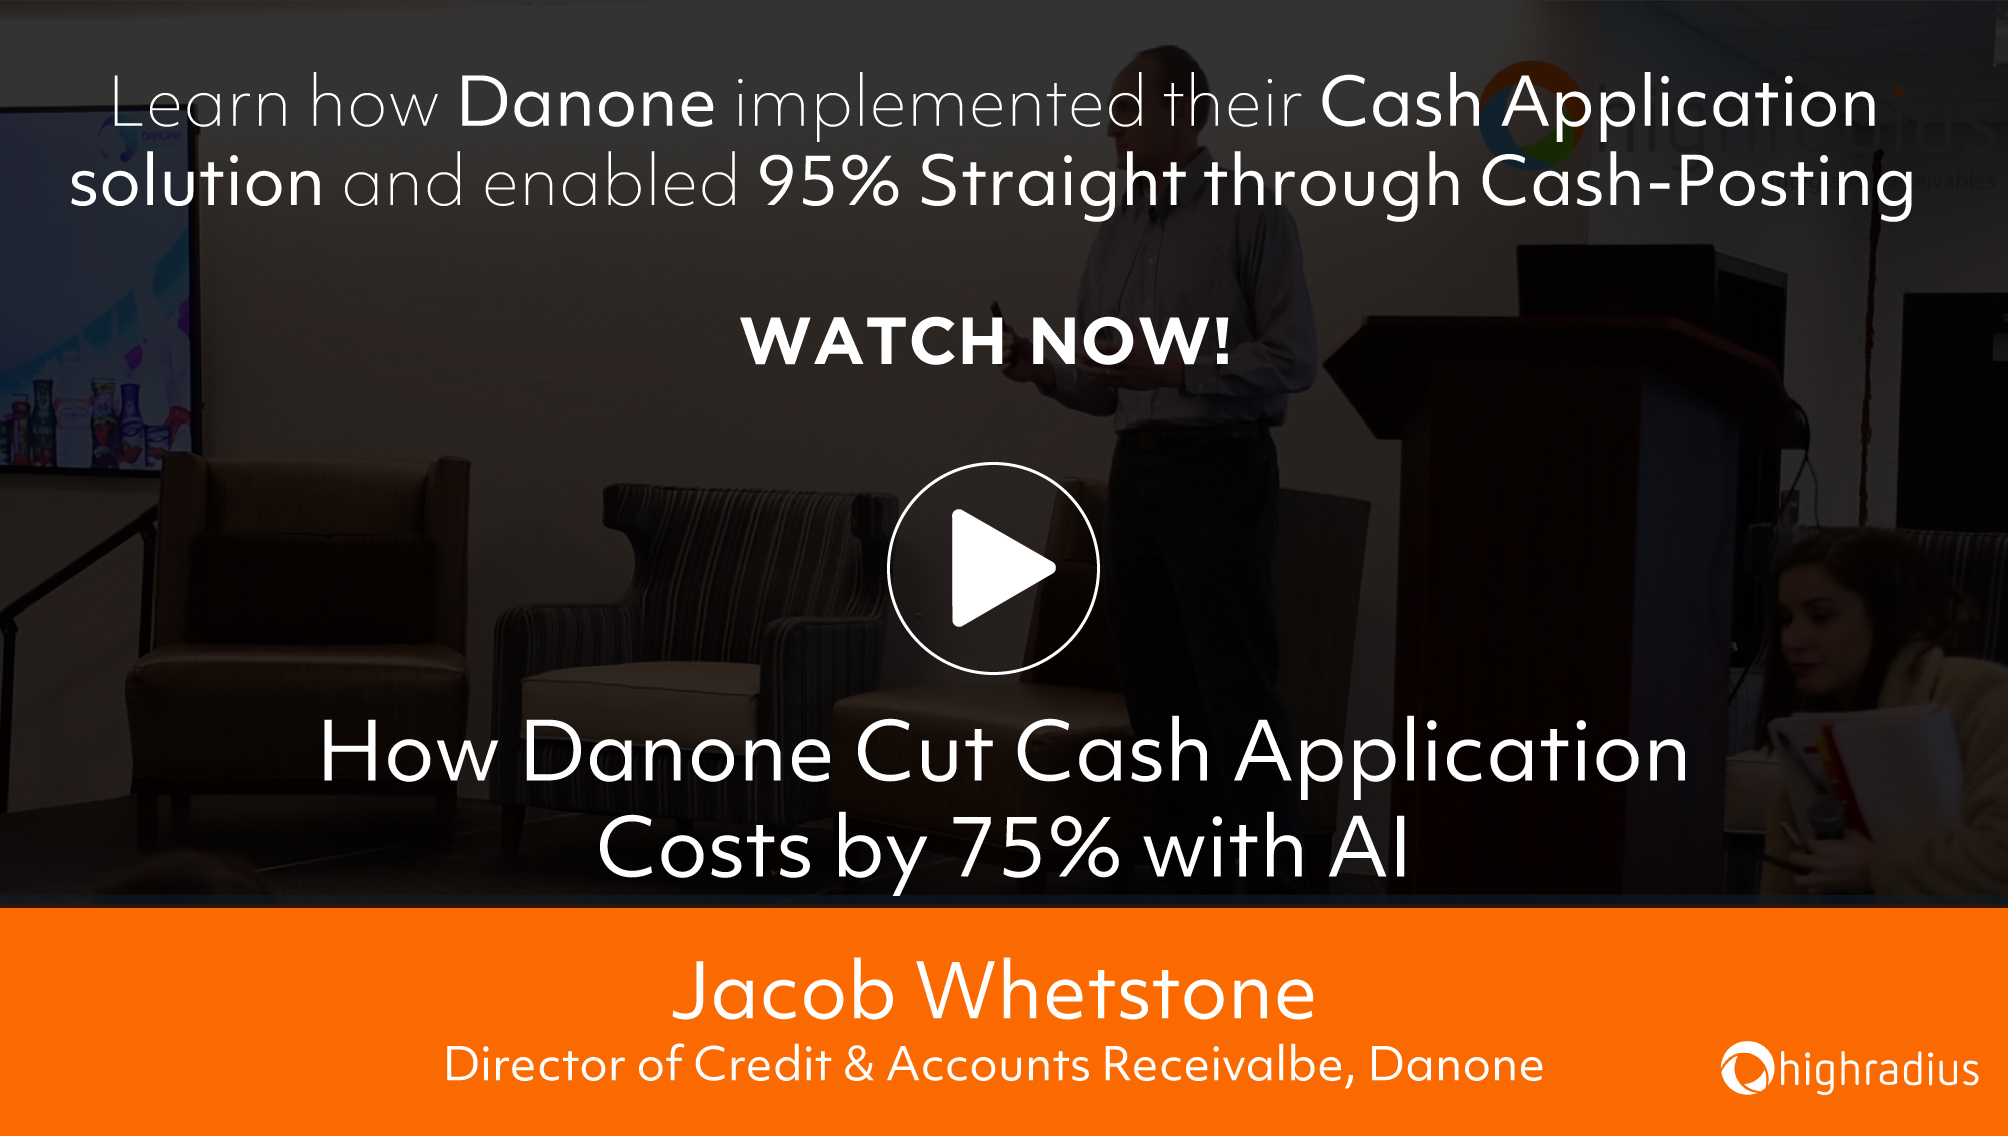 How Danone Cut Cash Application Costs by 75% with AI